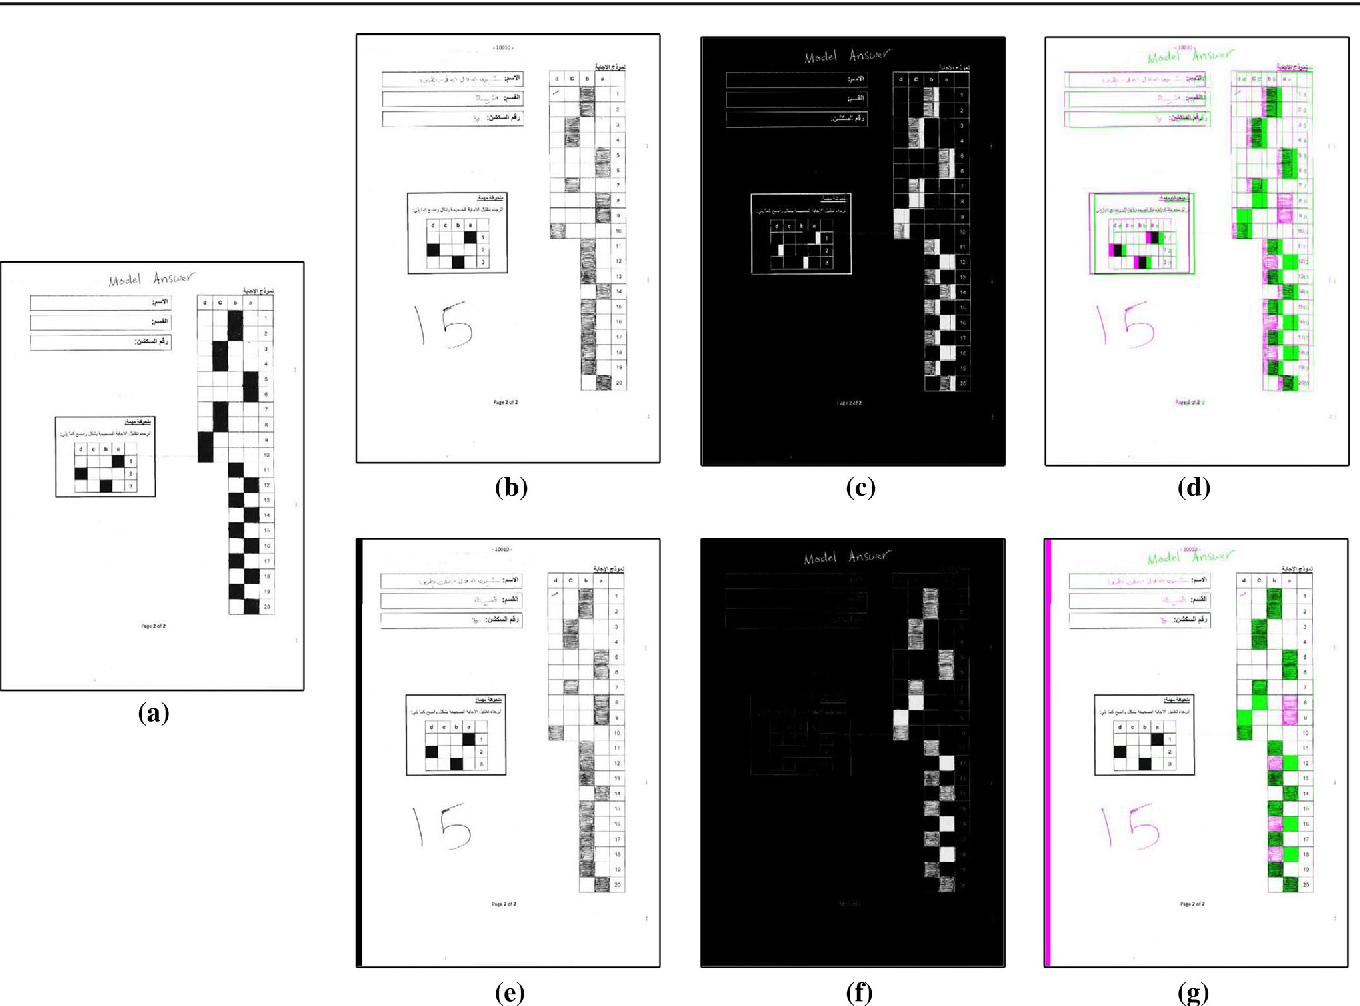 Figure 3 for The Achievement of Higher Flexibility in Multiple Choice-based Tests Using Image Classification Techniques